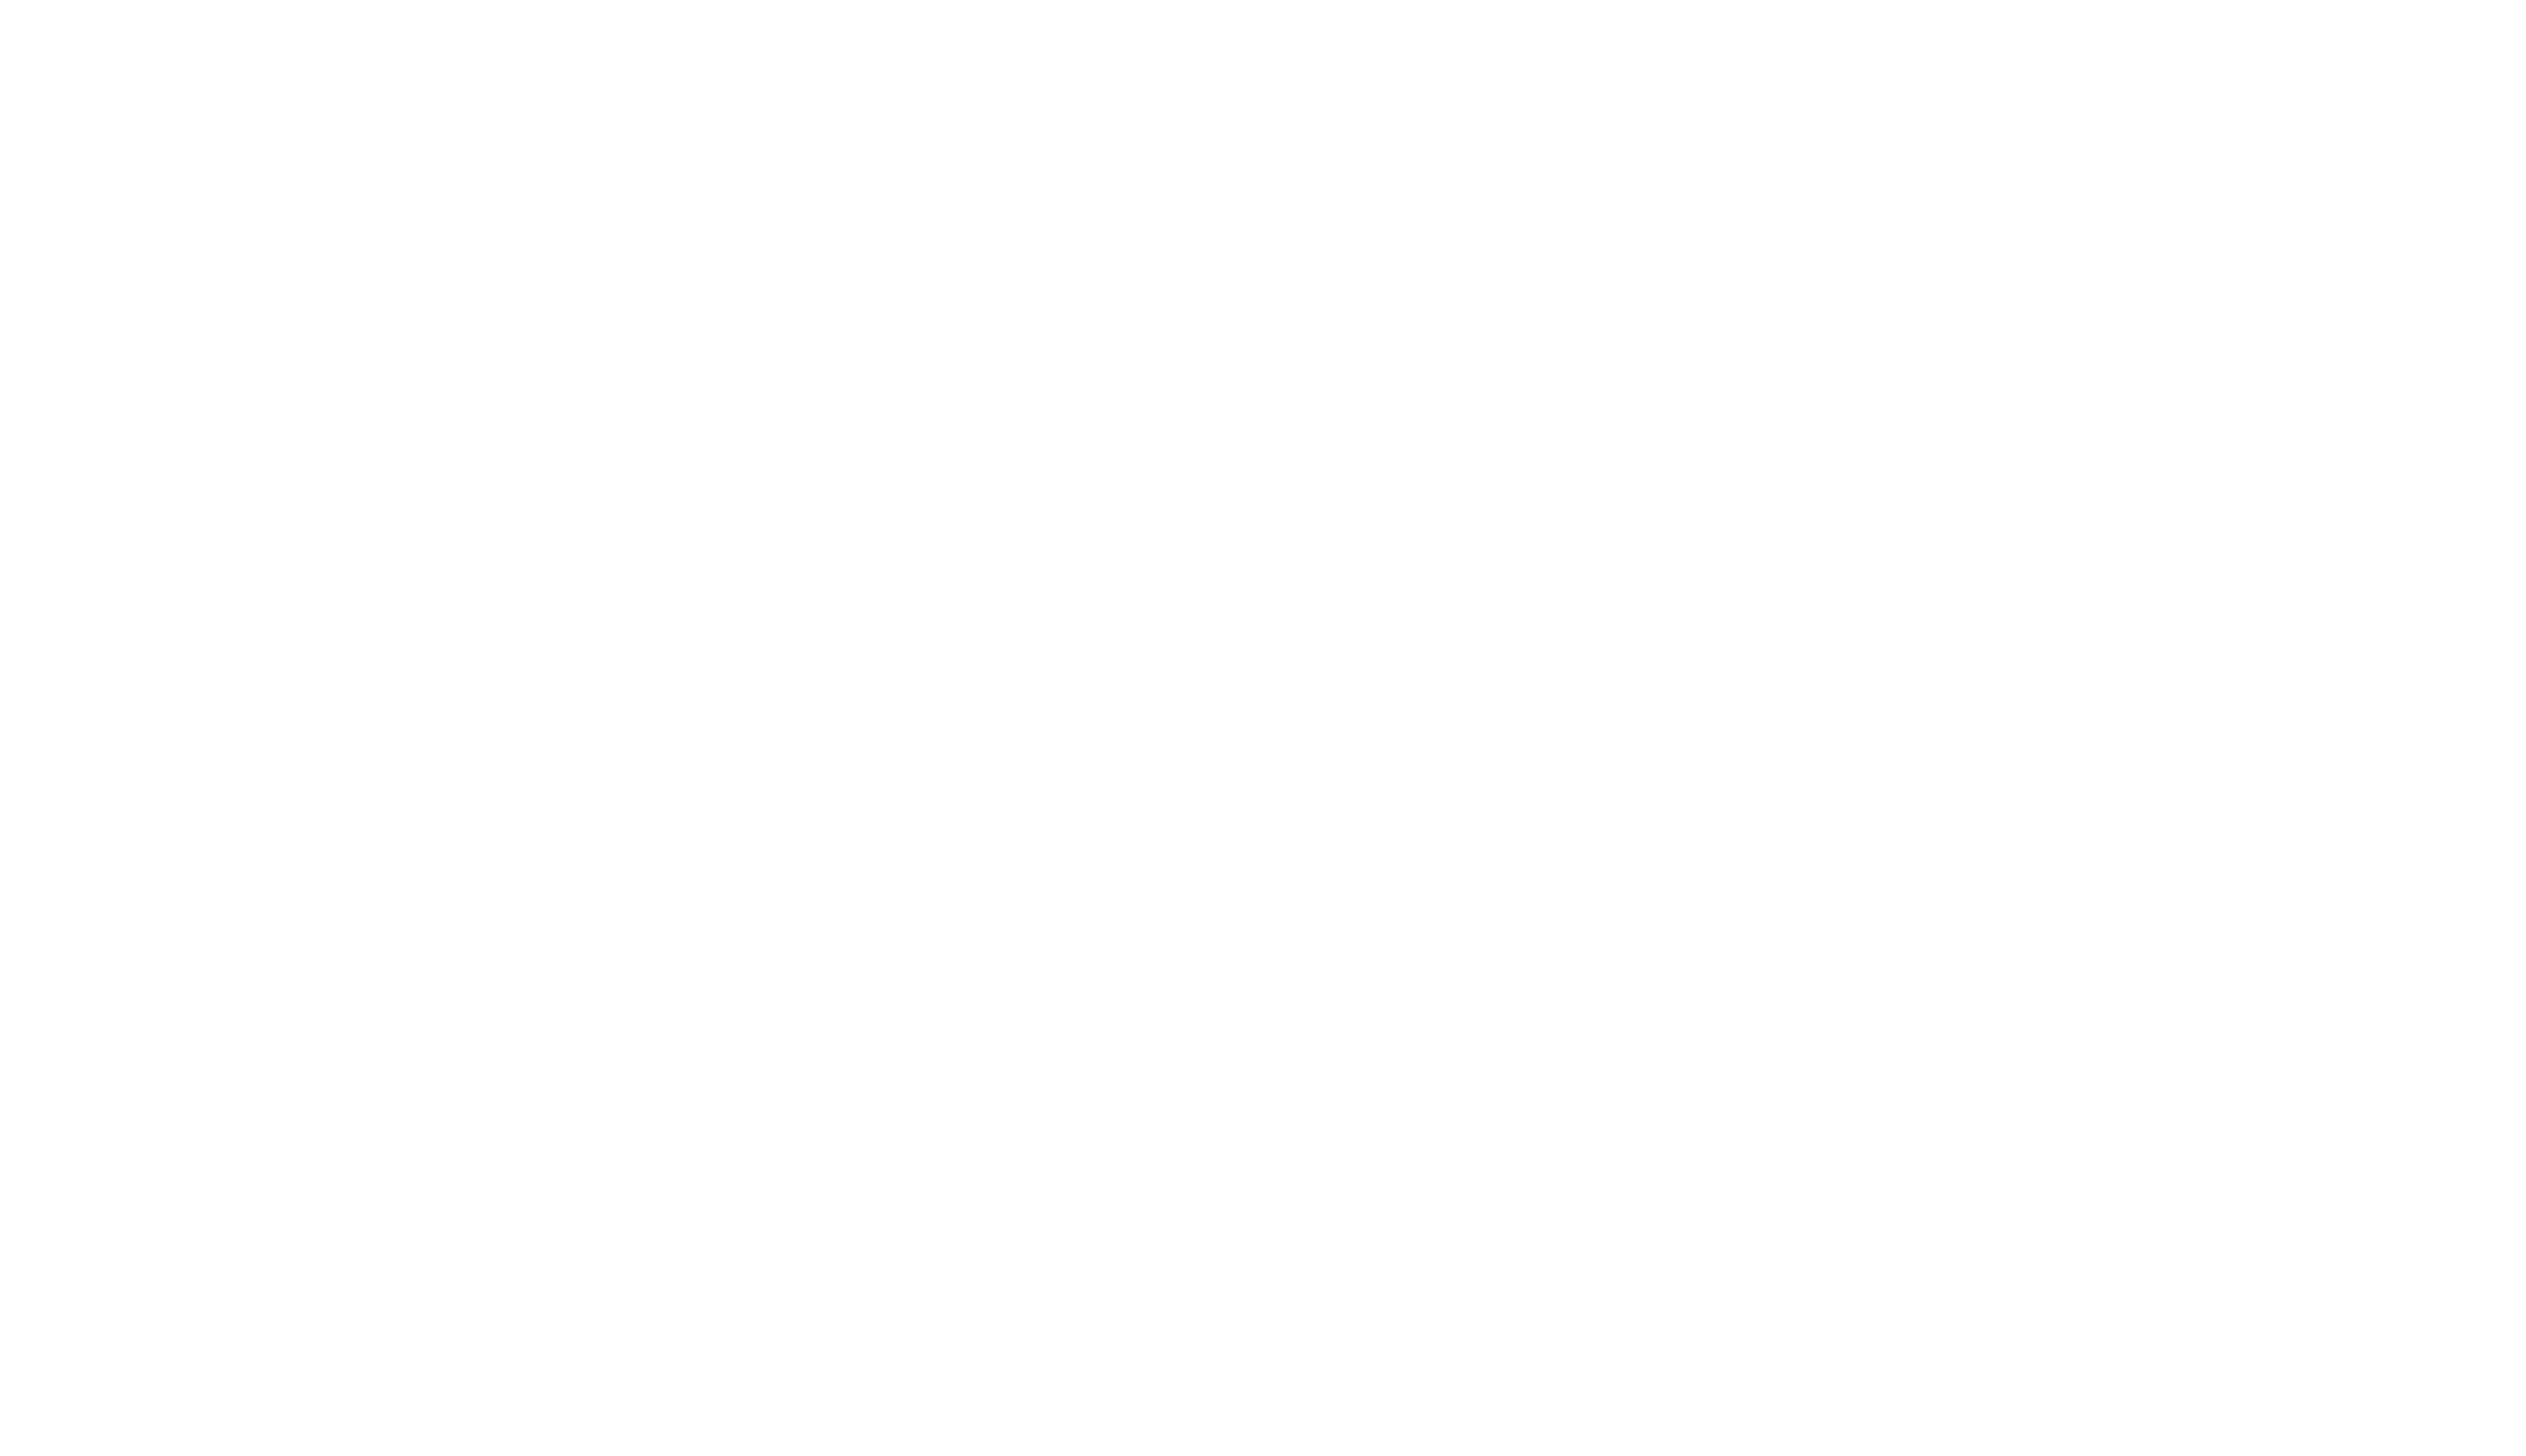 Oceania Image for Mobile devices